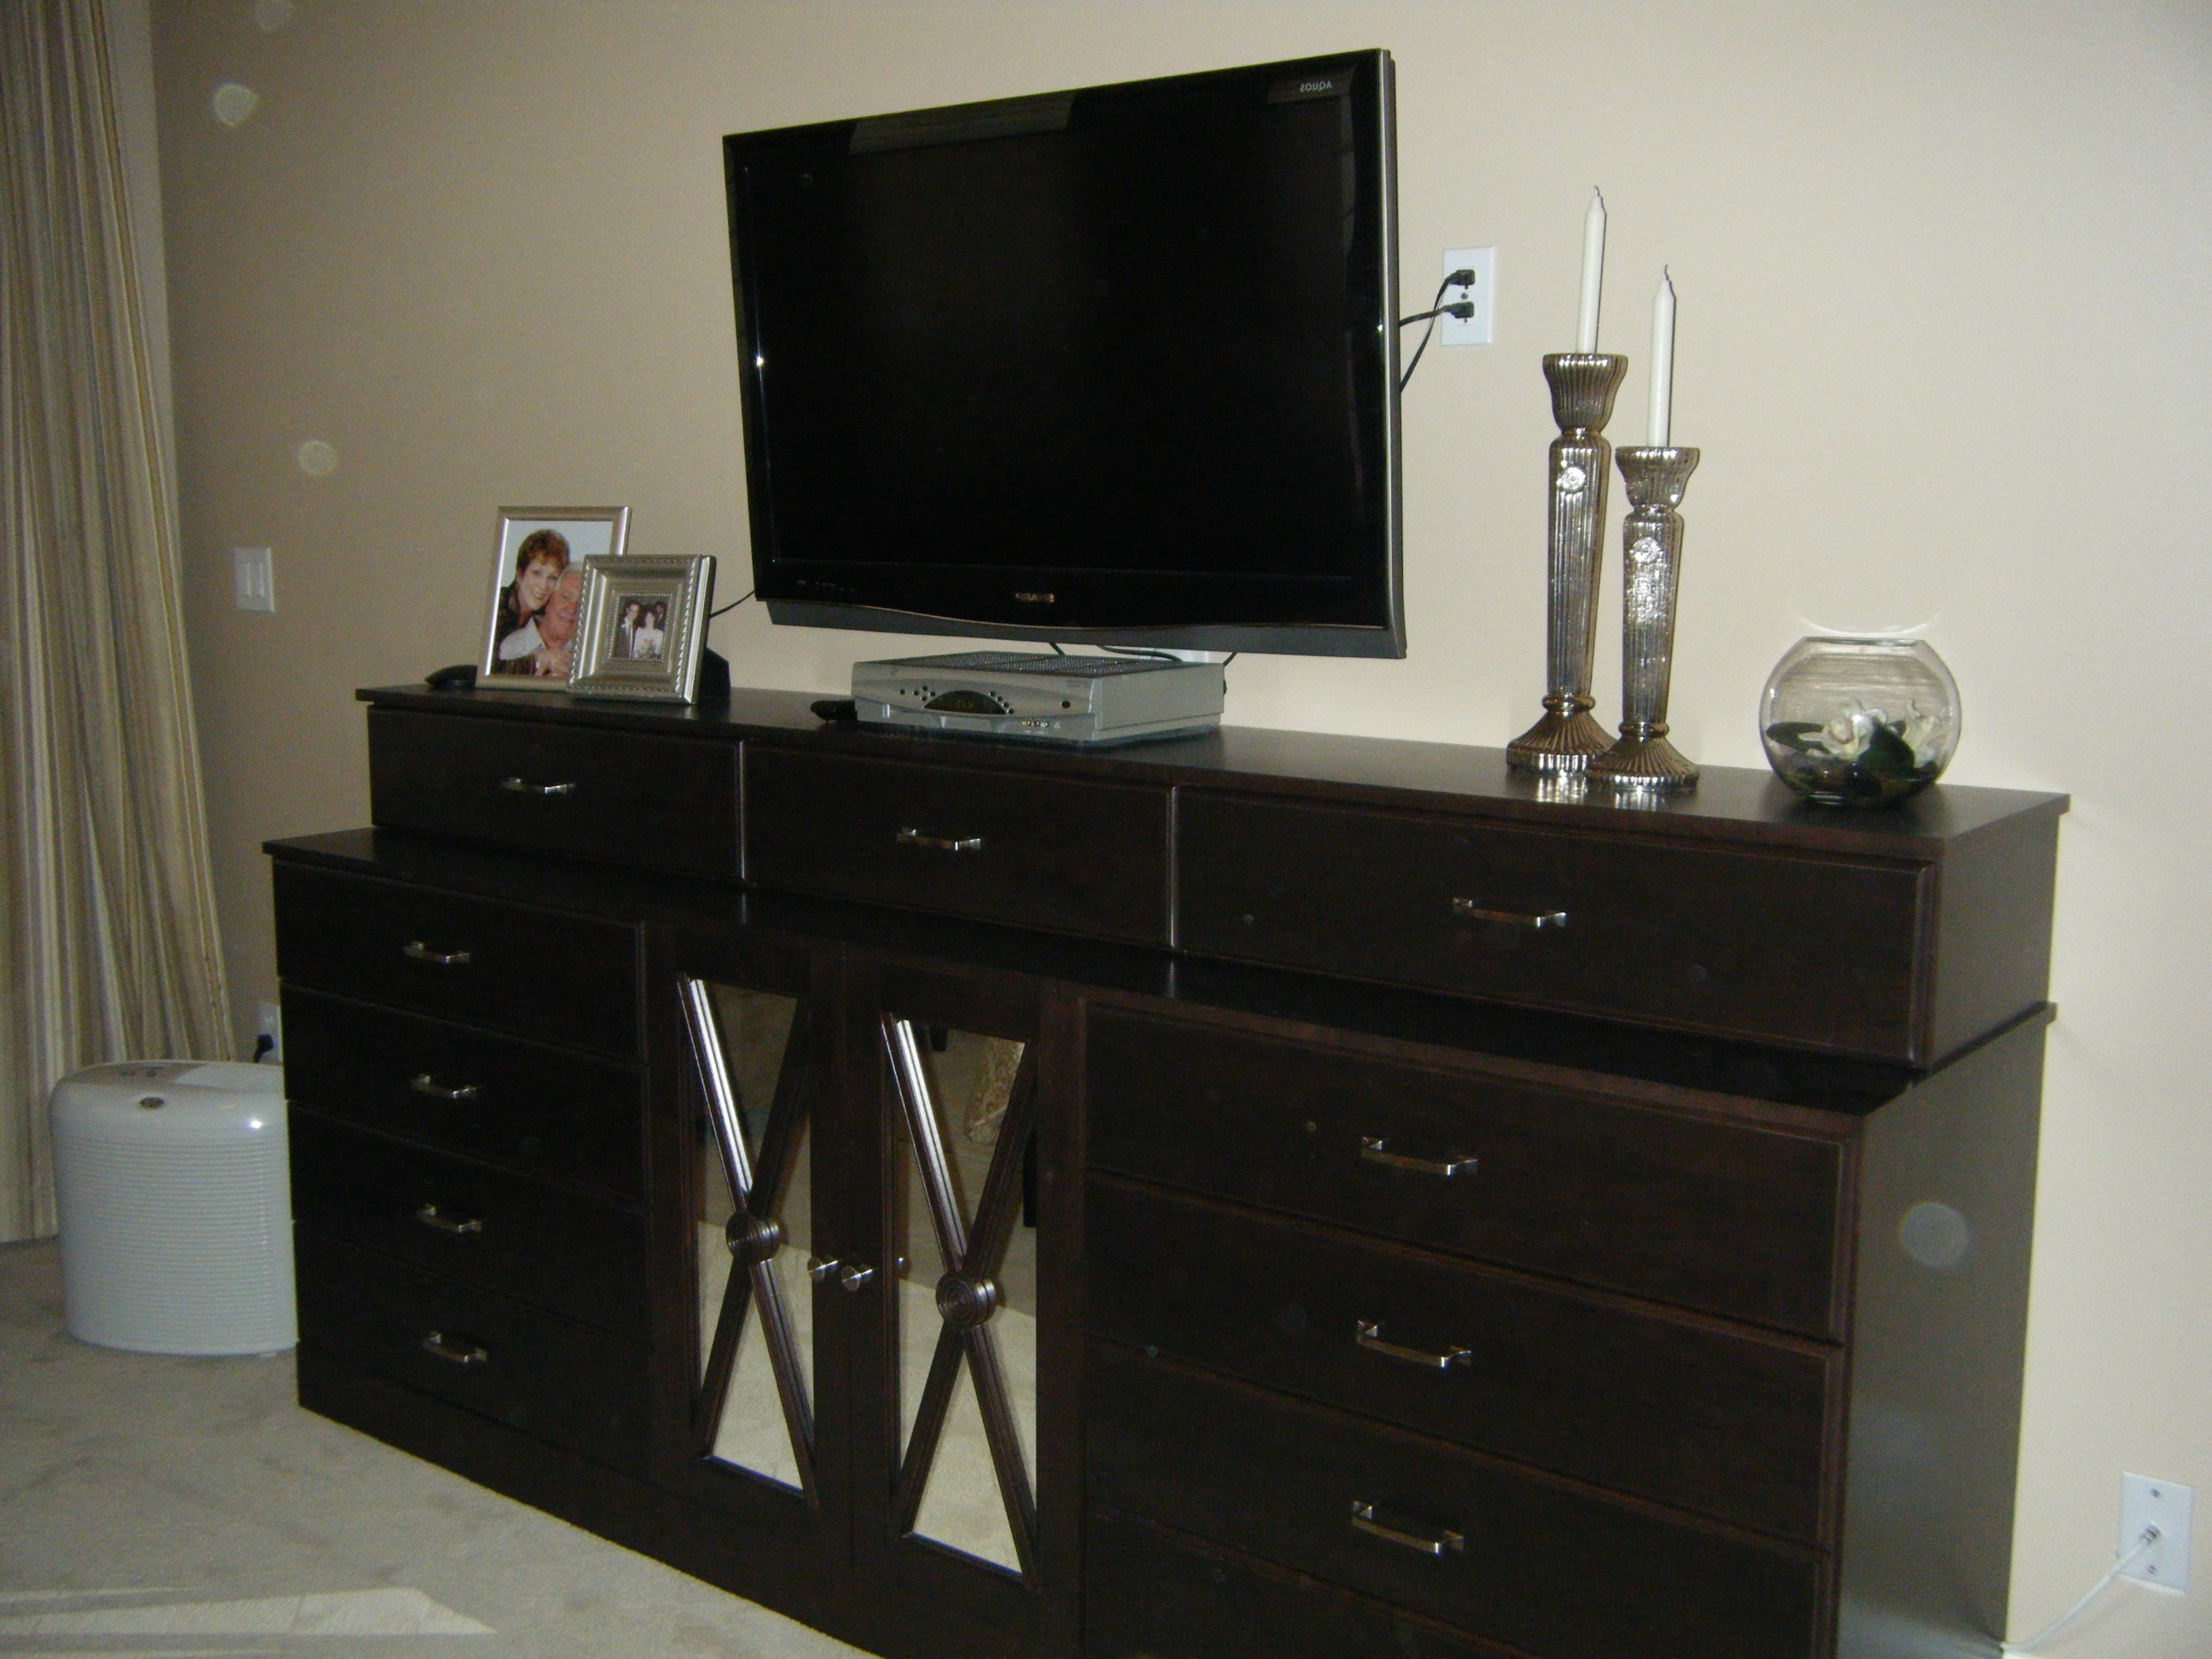 Well Liked Dresser And Tv Stands Combination Intended For Bedroom Wood Wardrobe Cabinet Tall Dresser Tv Stand Armoire Dresser (View 19 of 20)